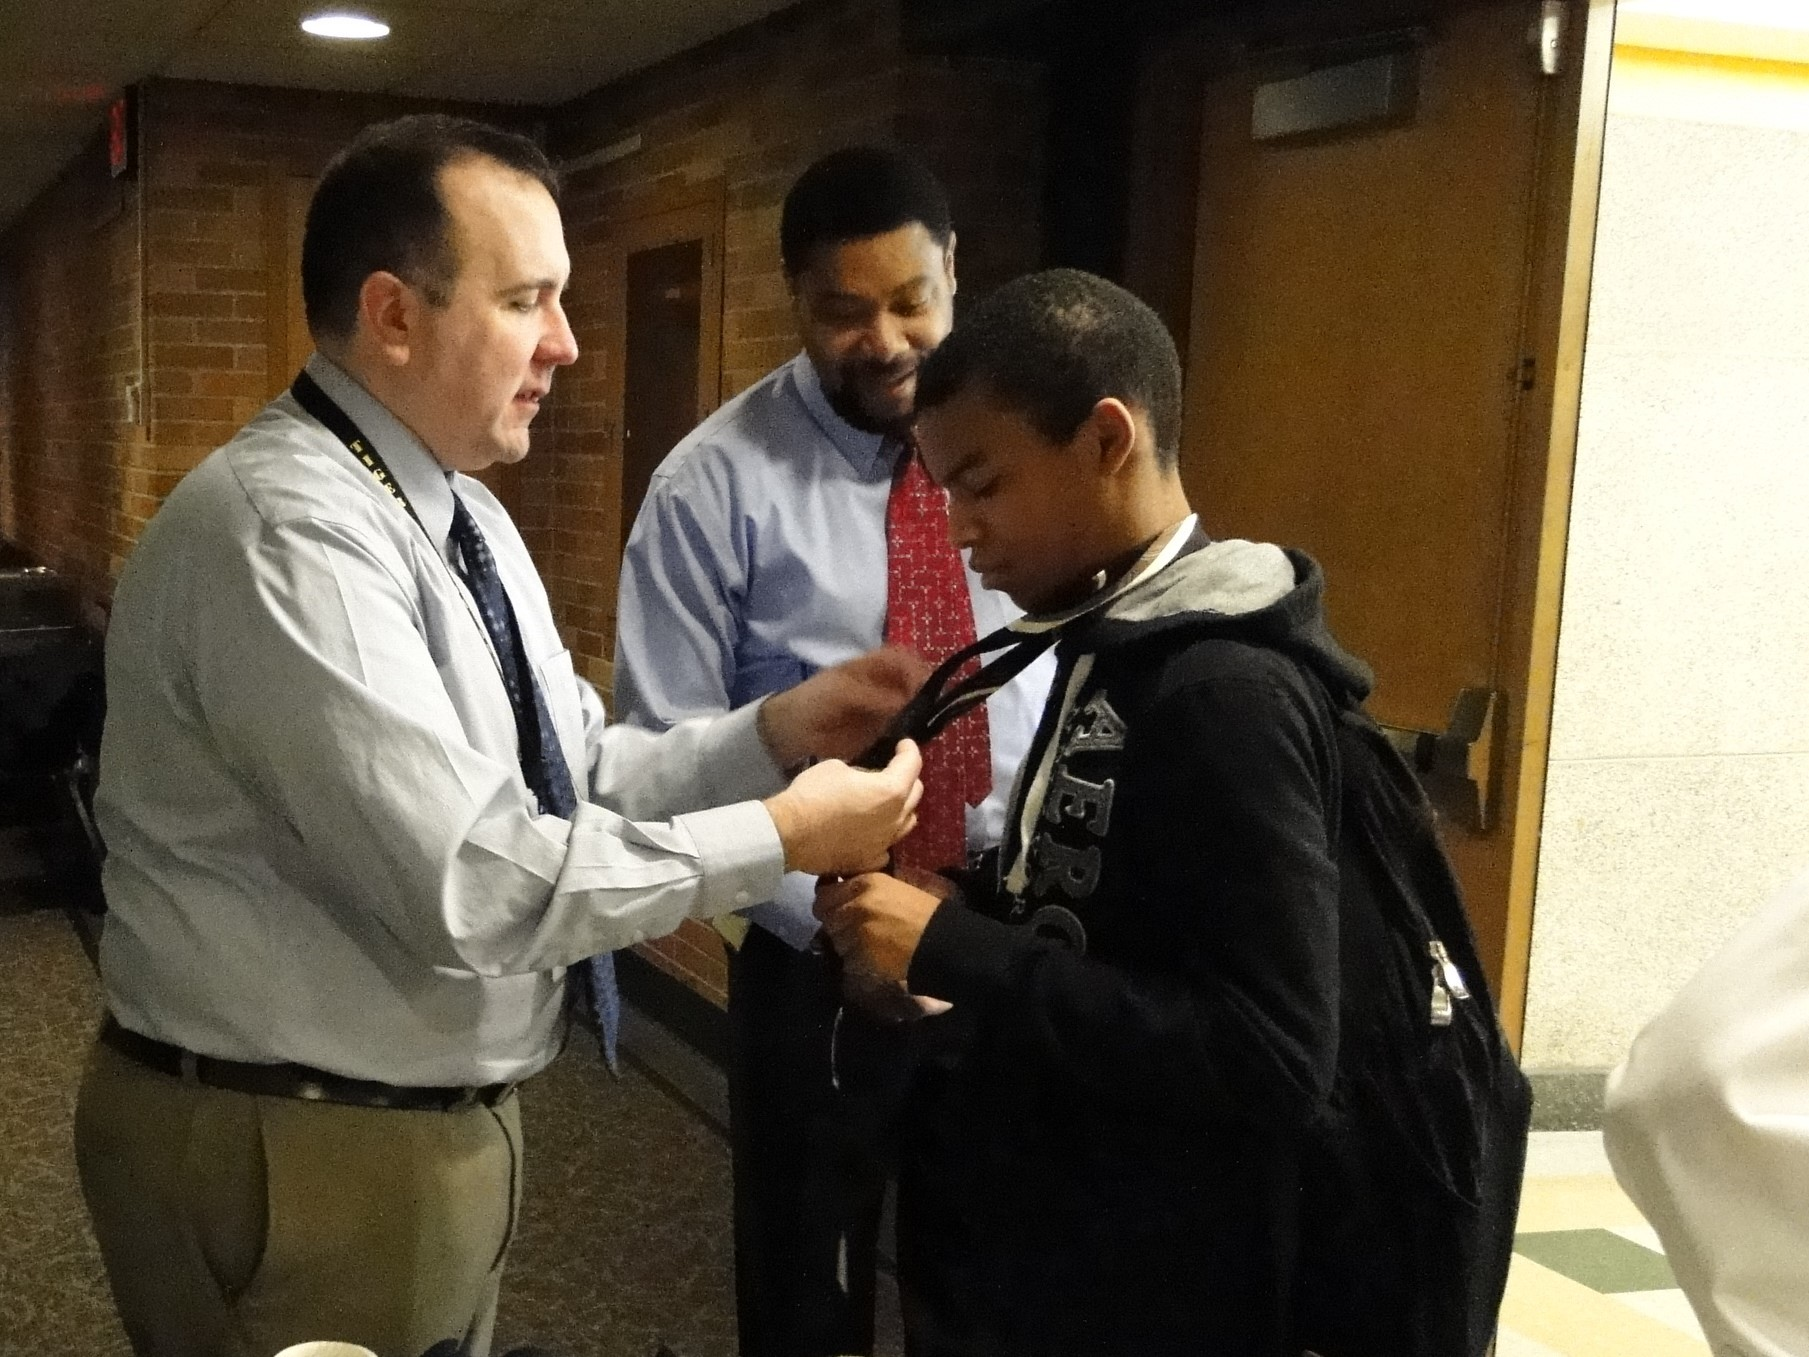 Administrator Bob Swaggard helps a student with his tie.